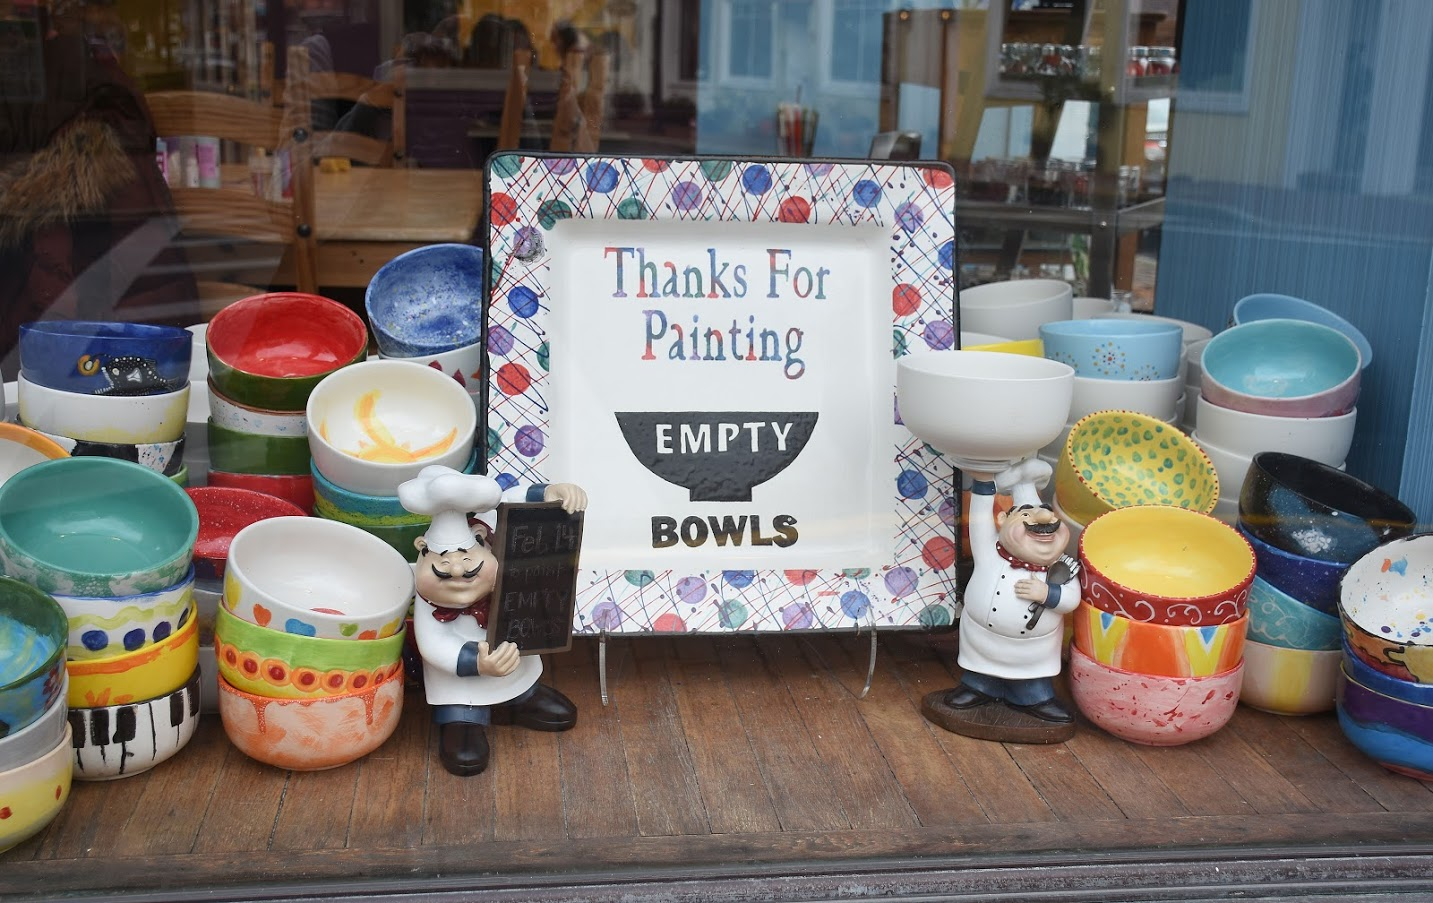 A thank you sign at Empty Bowls